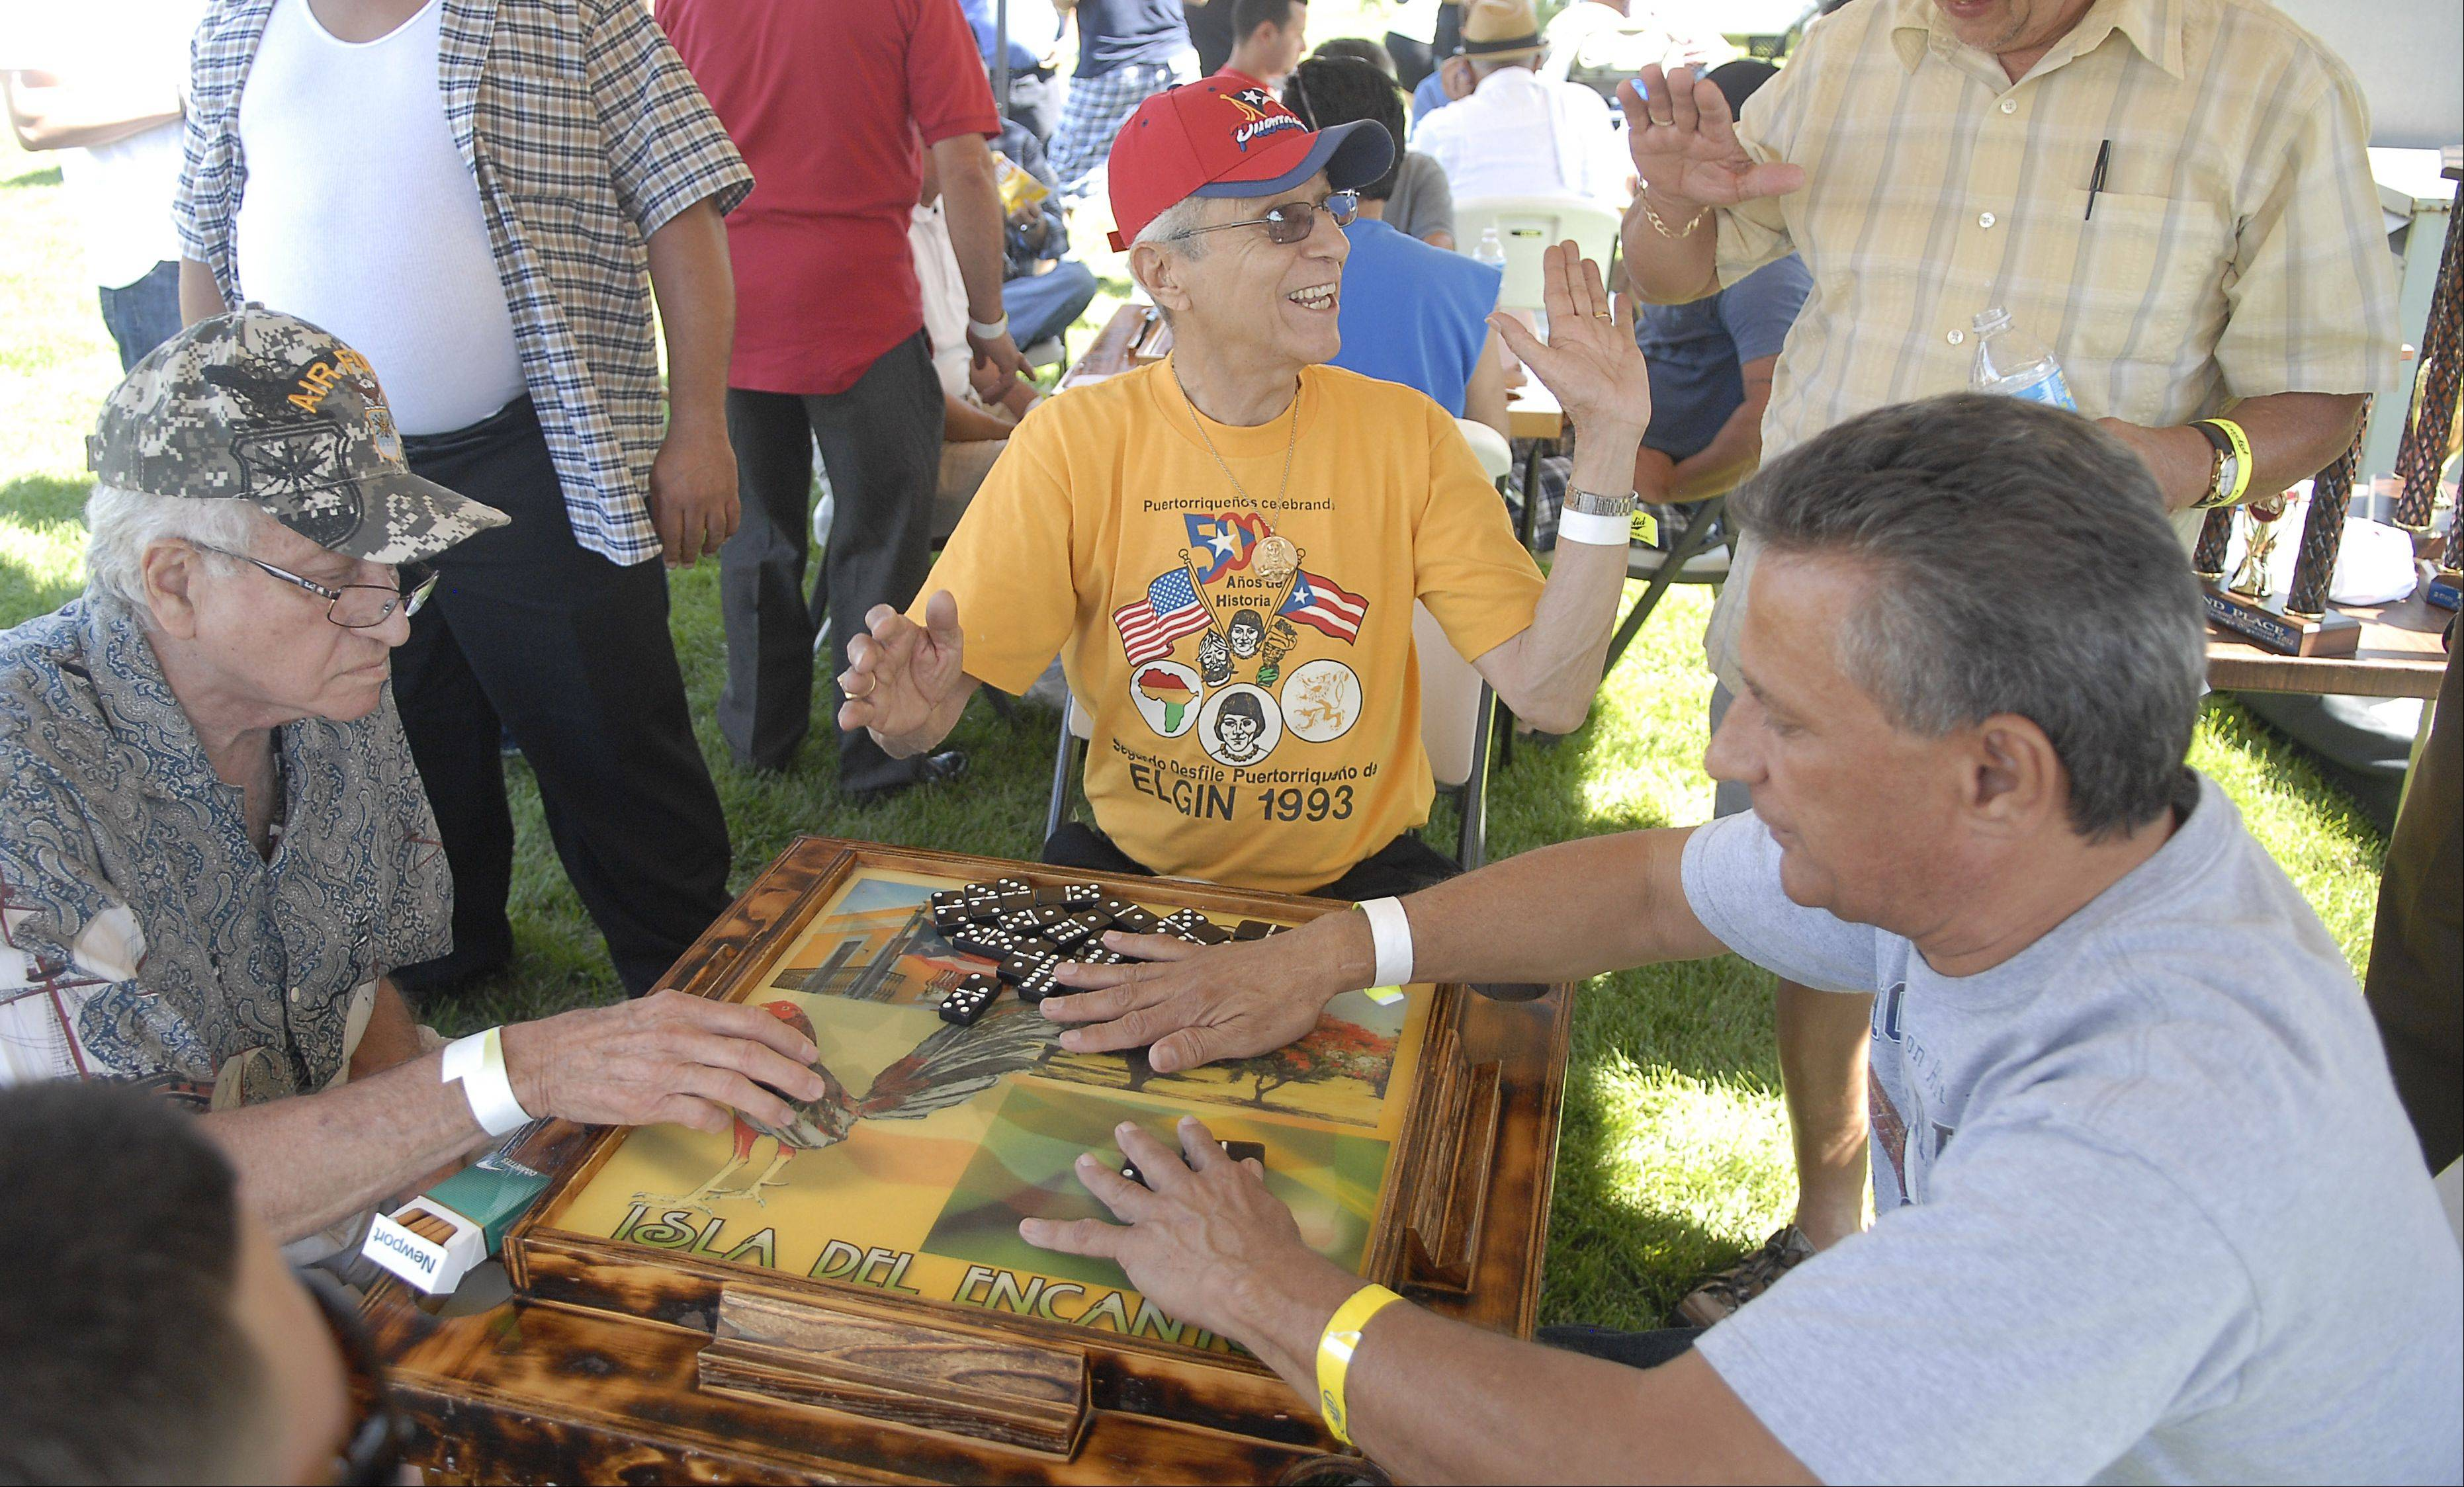 Saturday's Elgin International Festival, or iFest, will include a domino tournament organized by the Puerto Rican Heritage Organization, which held its own fest last year but will be part of iFest. The festival is Saturday at Festival Park.